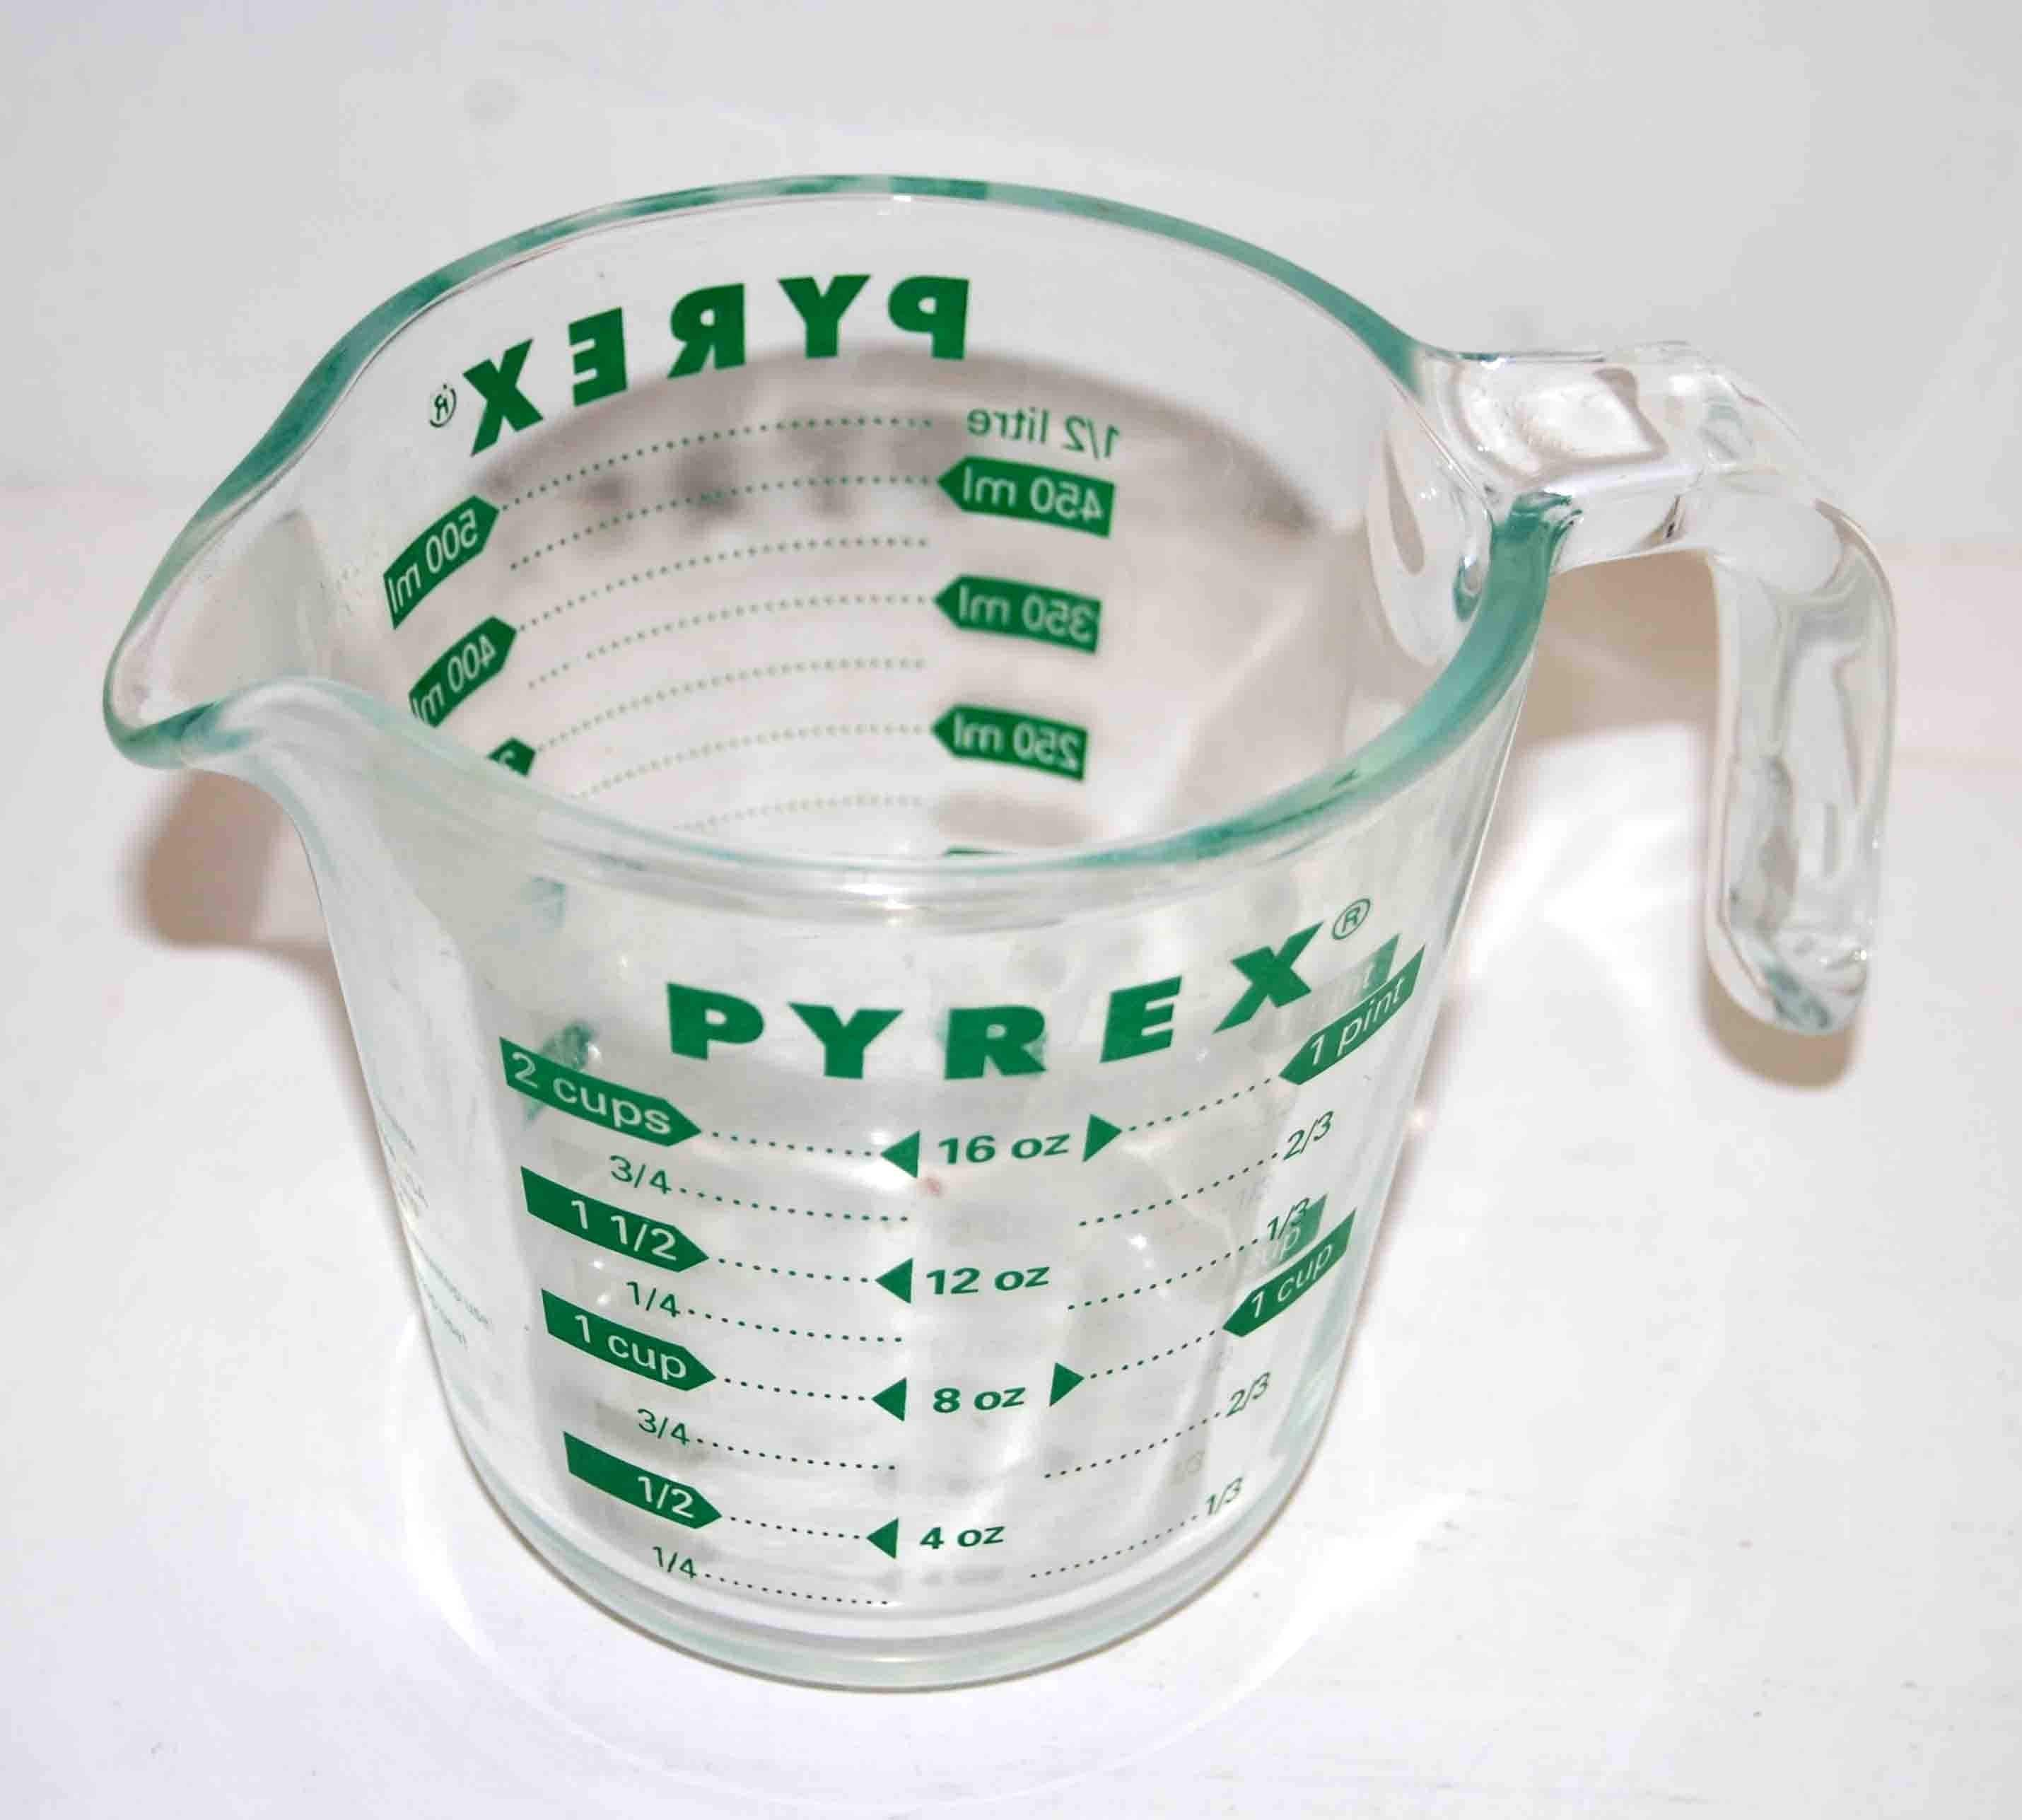 pyrex 16 oz measuring cup with green print. Black Bedroom Furniture Sets. Home Design Ideas